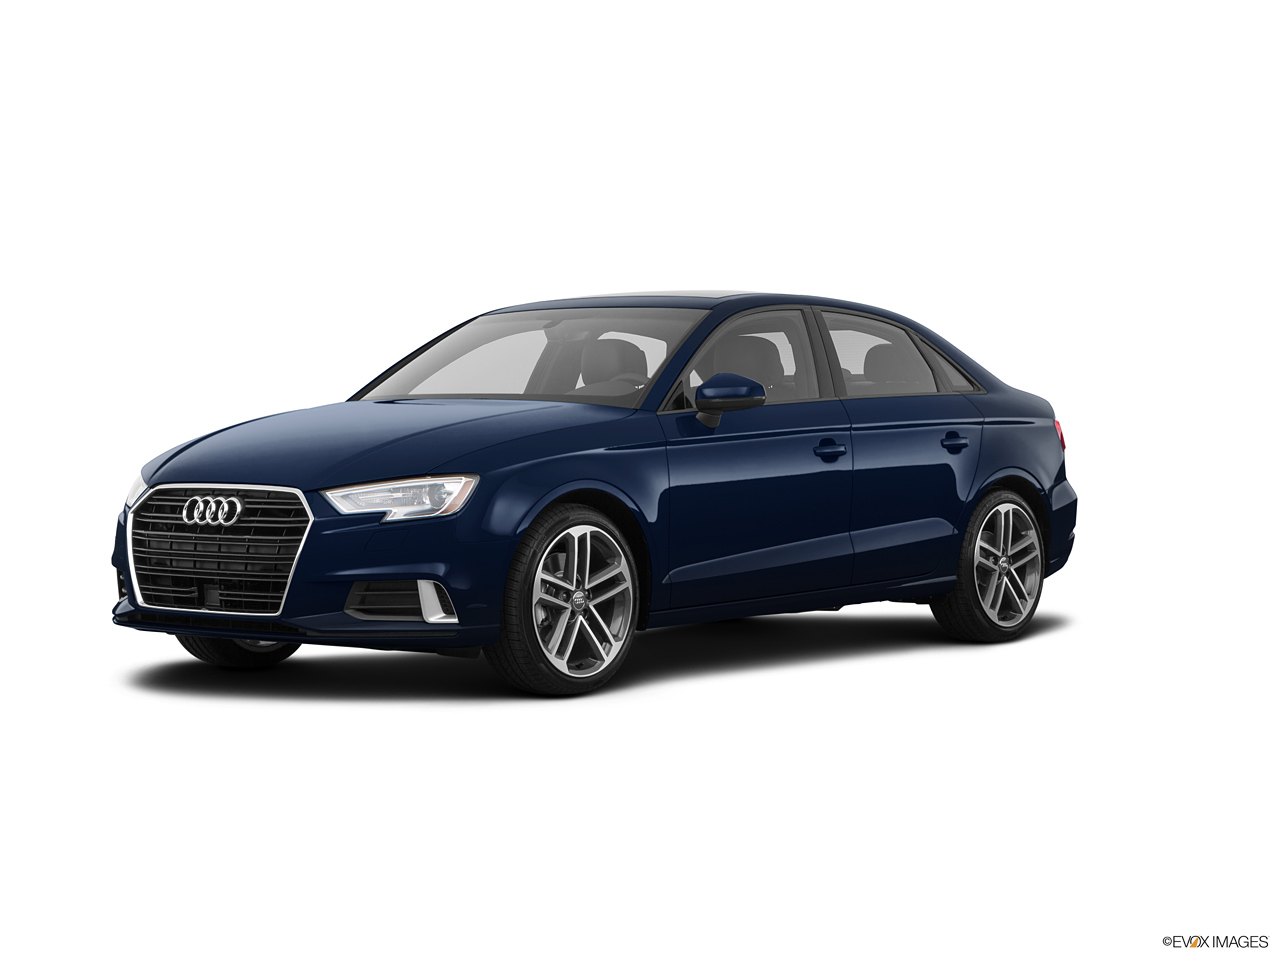 car pictures list for audi a3 sedan 2018 sport 35 1 4 tfsi 150 hp uae yallamotor. Black Bedroom Furniture Sets. Home Design Ideas